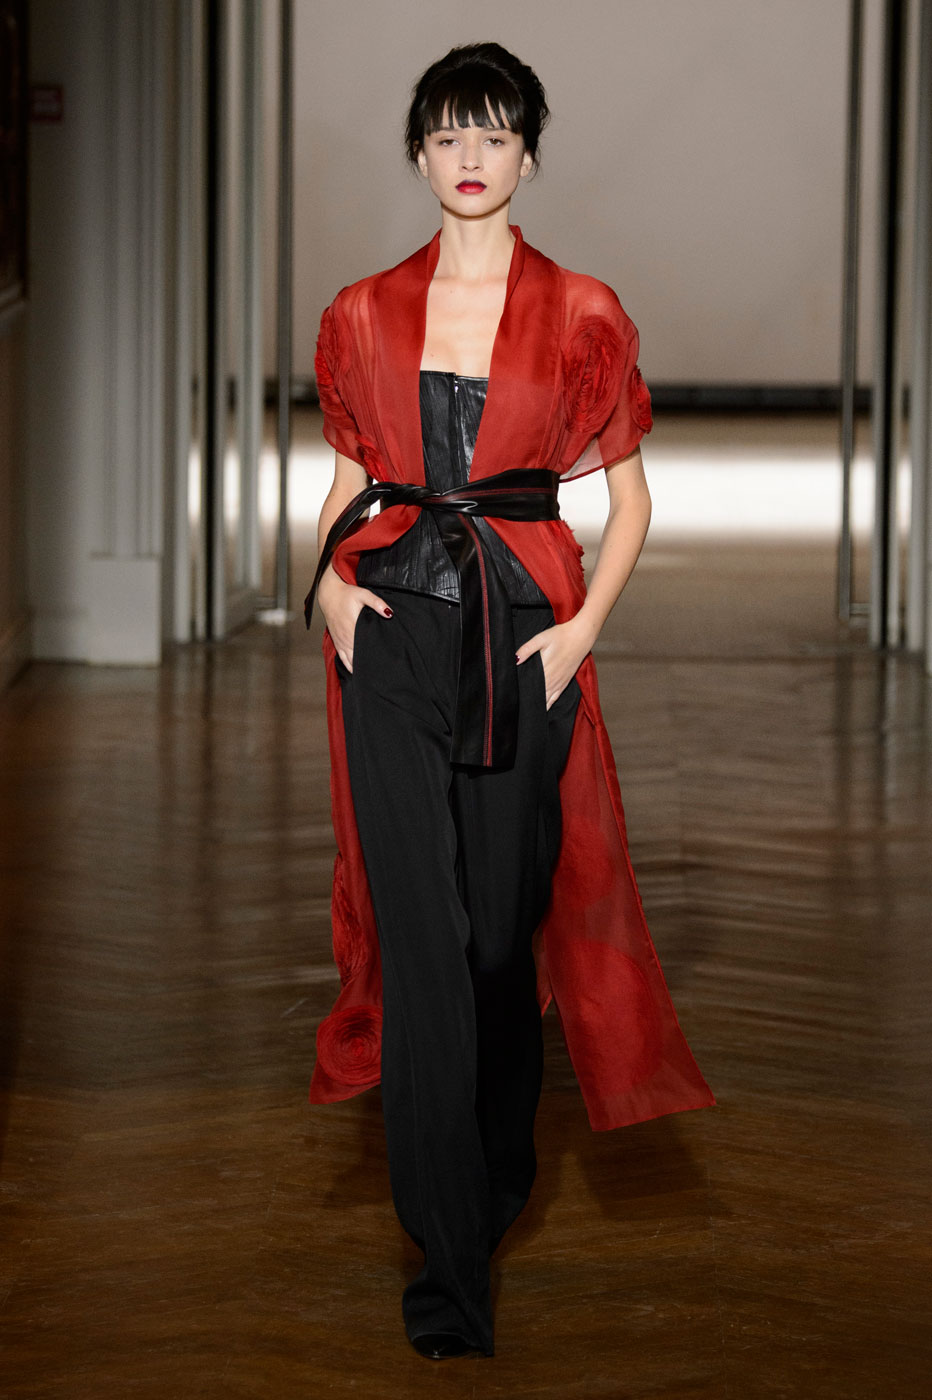 Gustavolins-Prive-fashion-runway-show-haute-couture-paris-spring-2015-the-impression-62